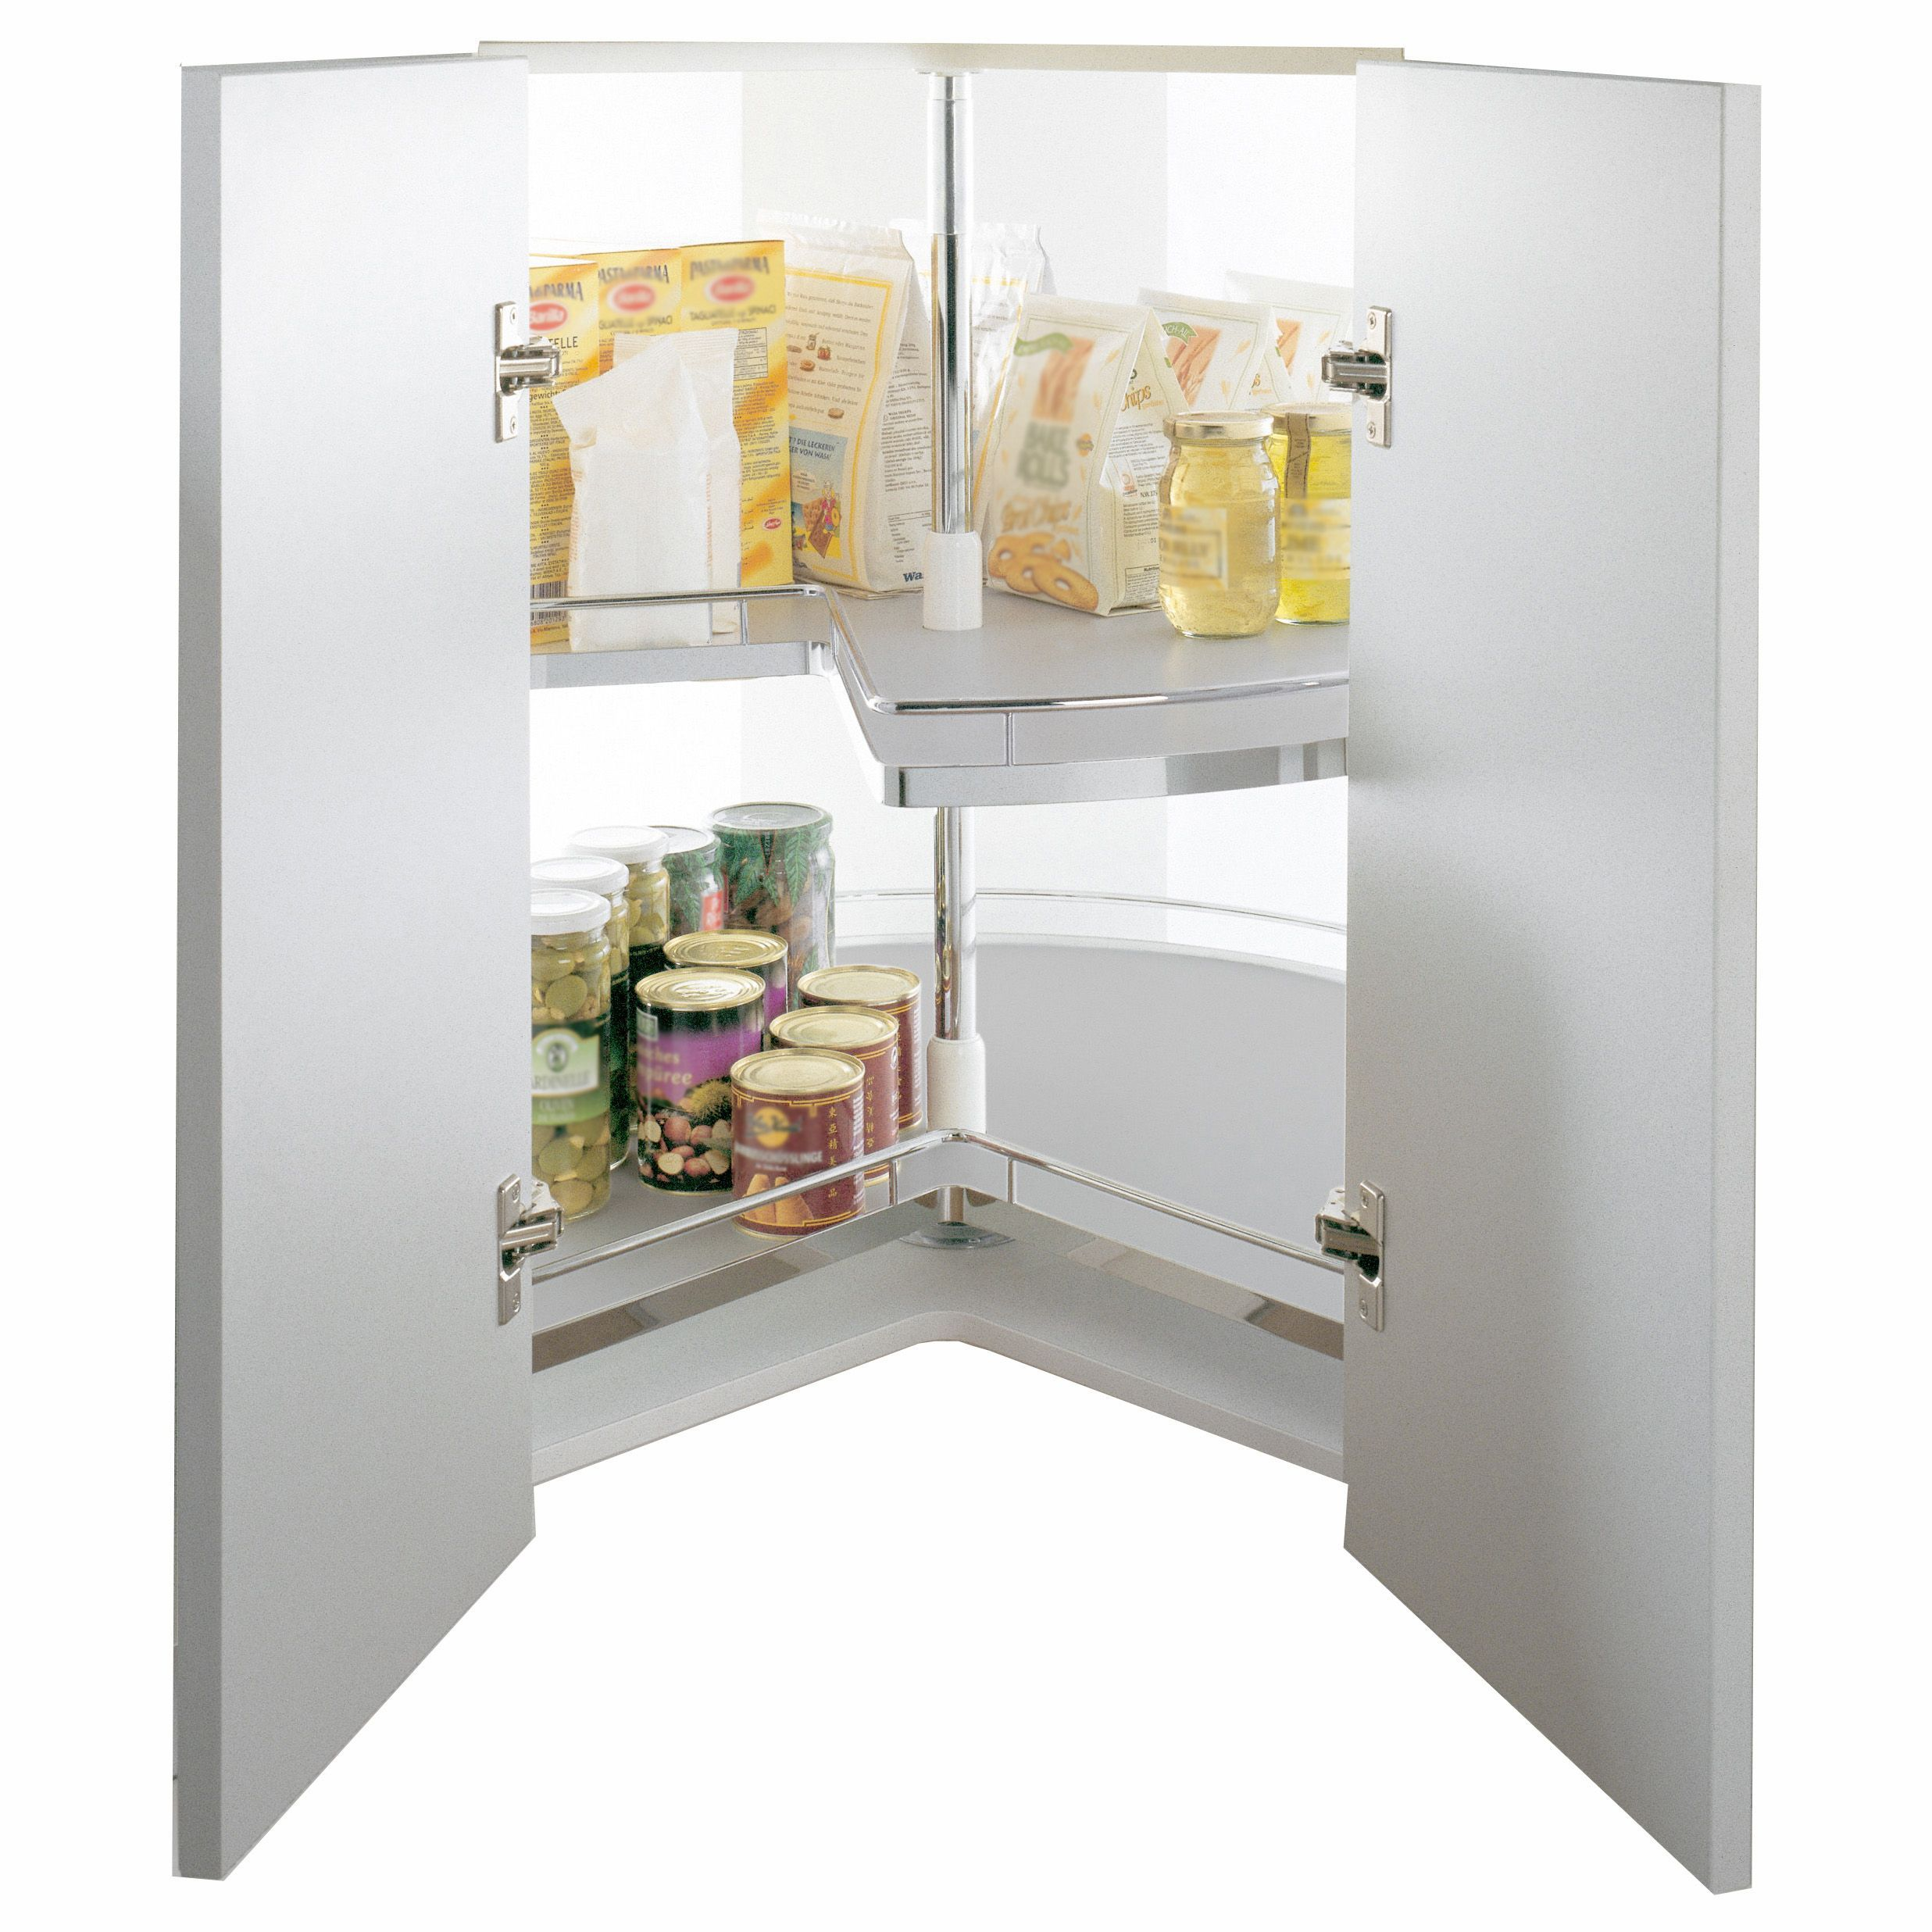 Kitchen Cabinet Carousel Corner Kessebhmer Corner Cabinet Three Quarter Carousel 1000mm Diy